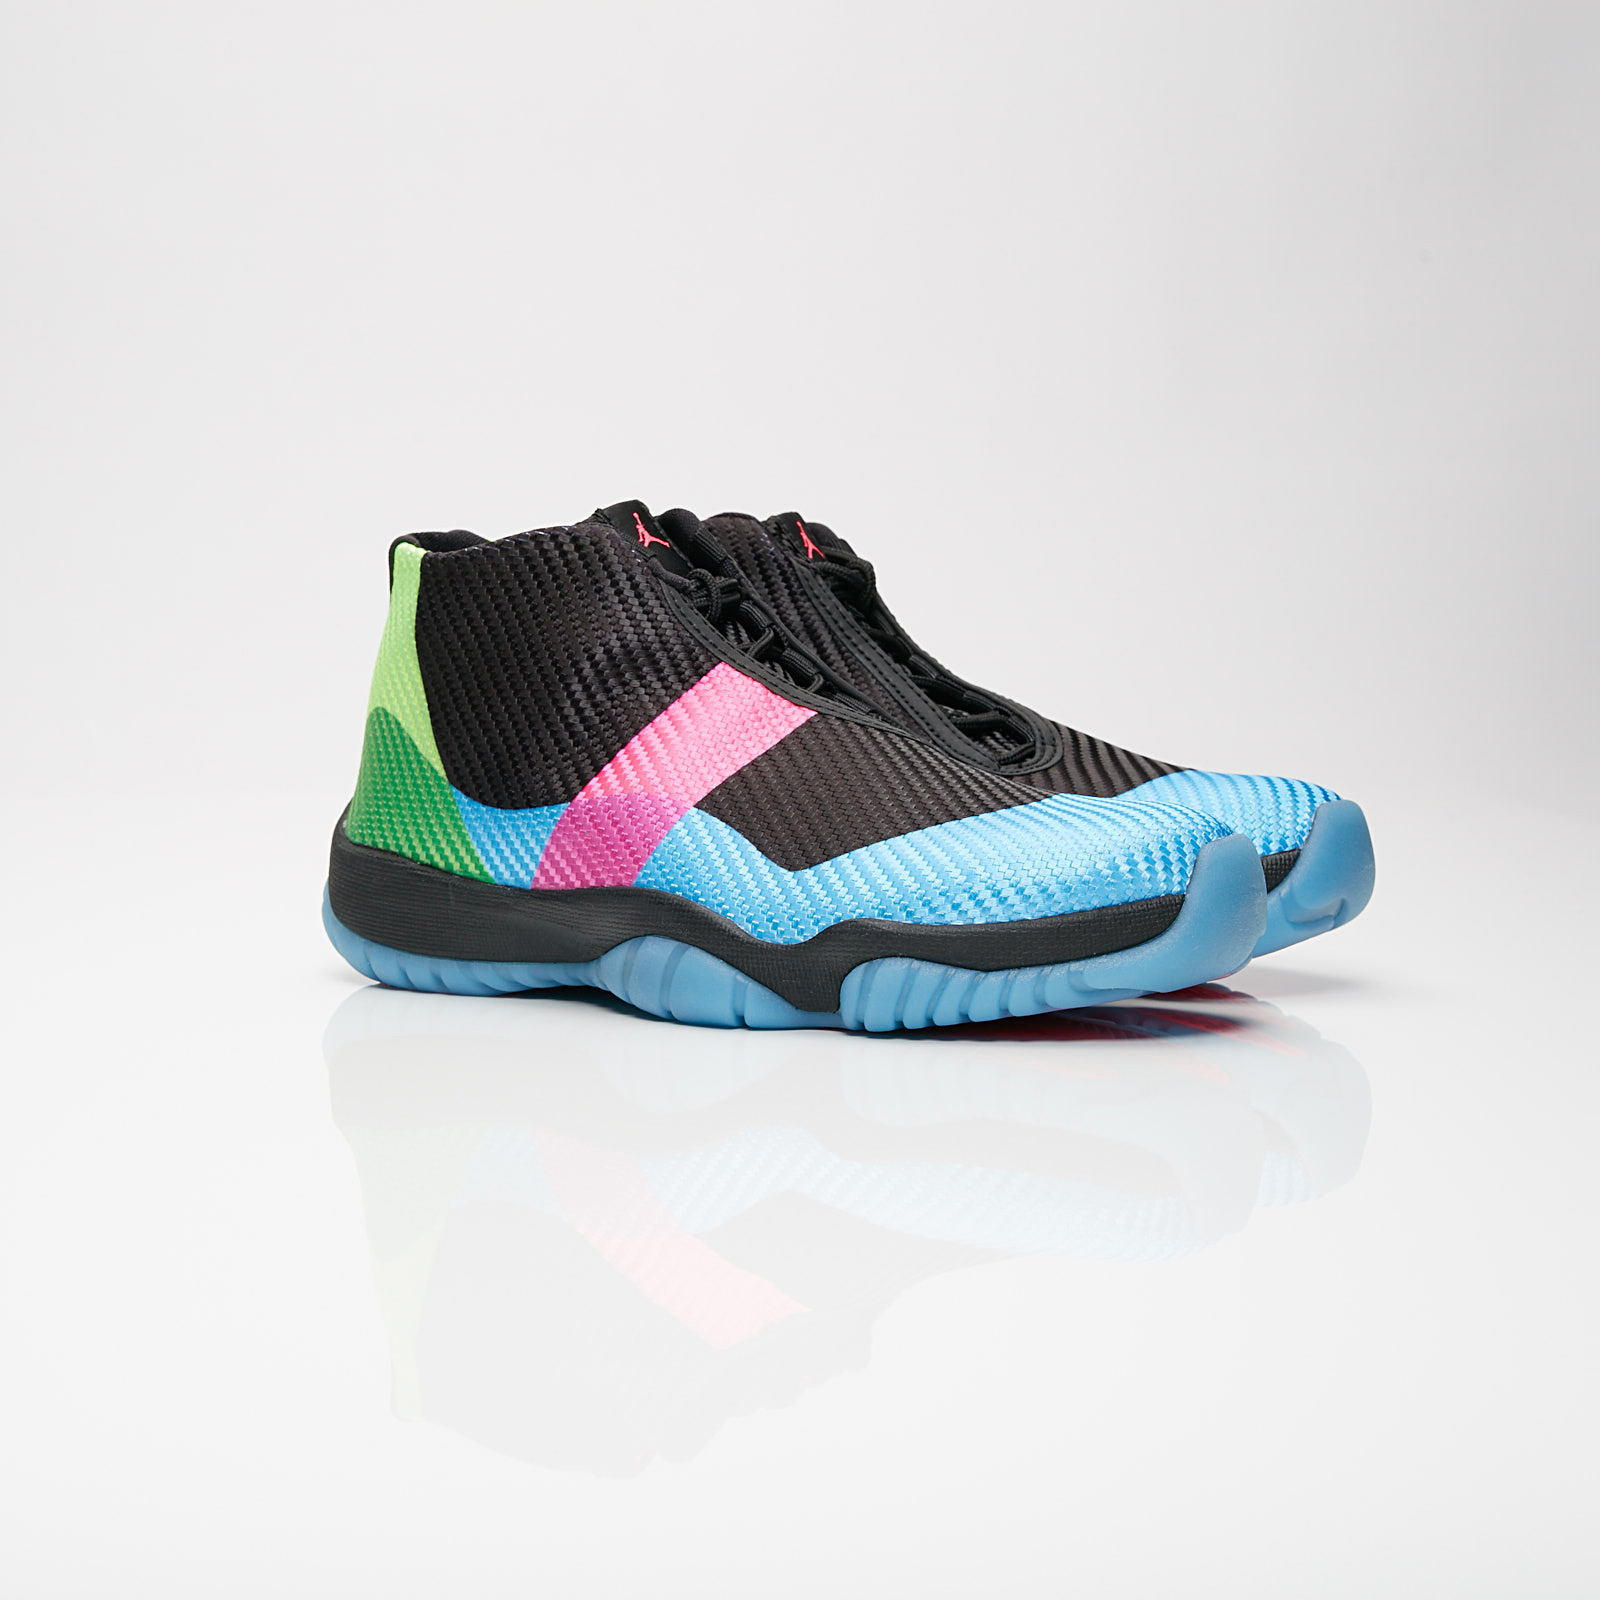 065b88fefd6 Jordan Brand Air Jordan Future Q54 GS - At9192-001 - Sneakersnstuff ...